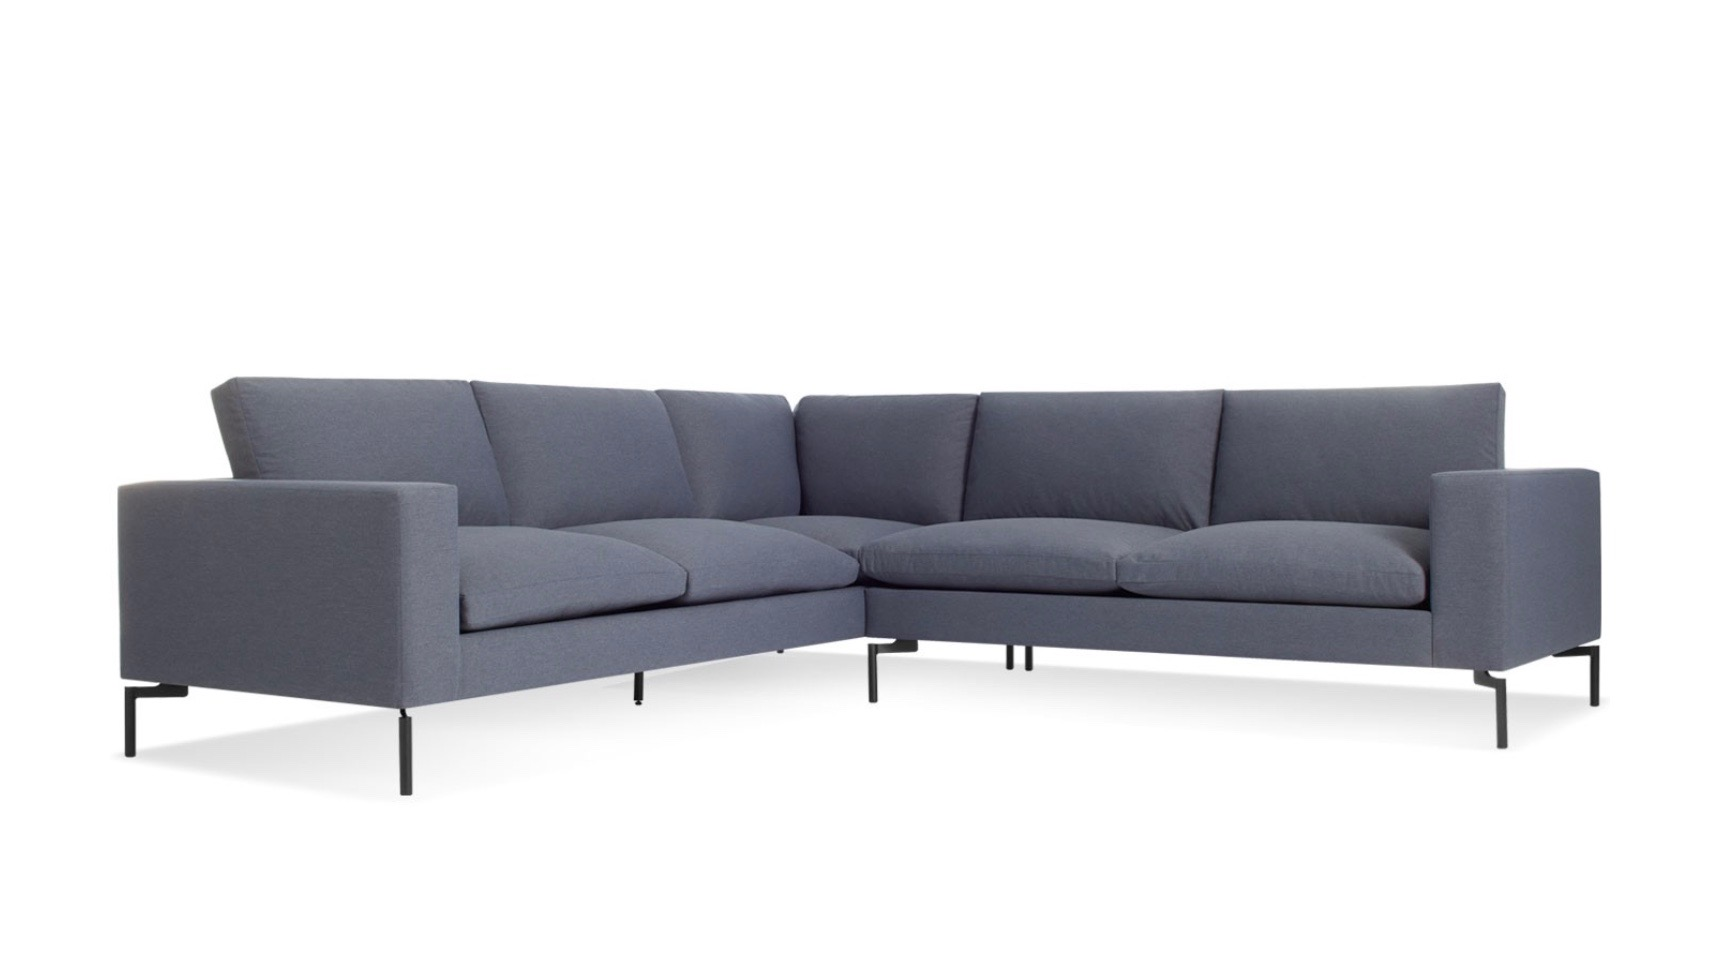 New Standard Sectional Sofa - Small by Blu Dot — Hub Modern Home + GiftPost  — Hub Modern Home + Gift